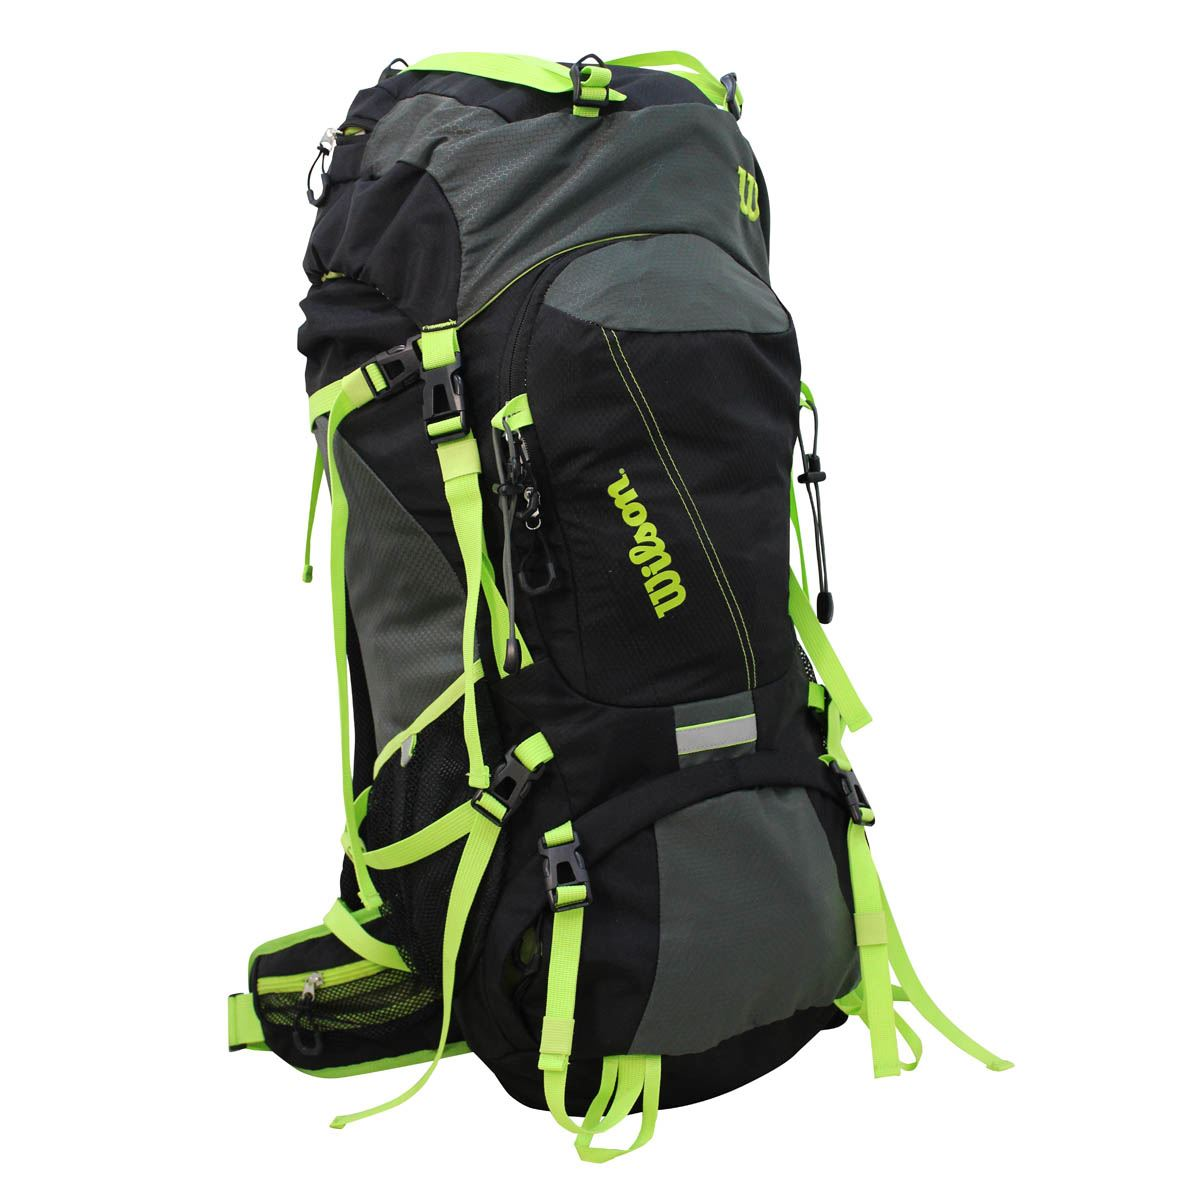 Camping bag ie-15104 black/green  - Sanborns